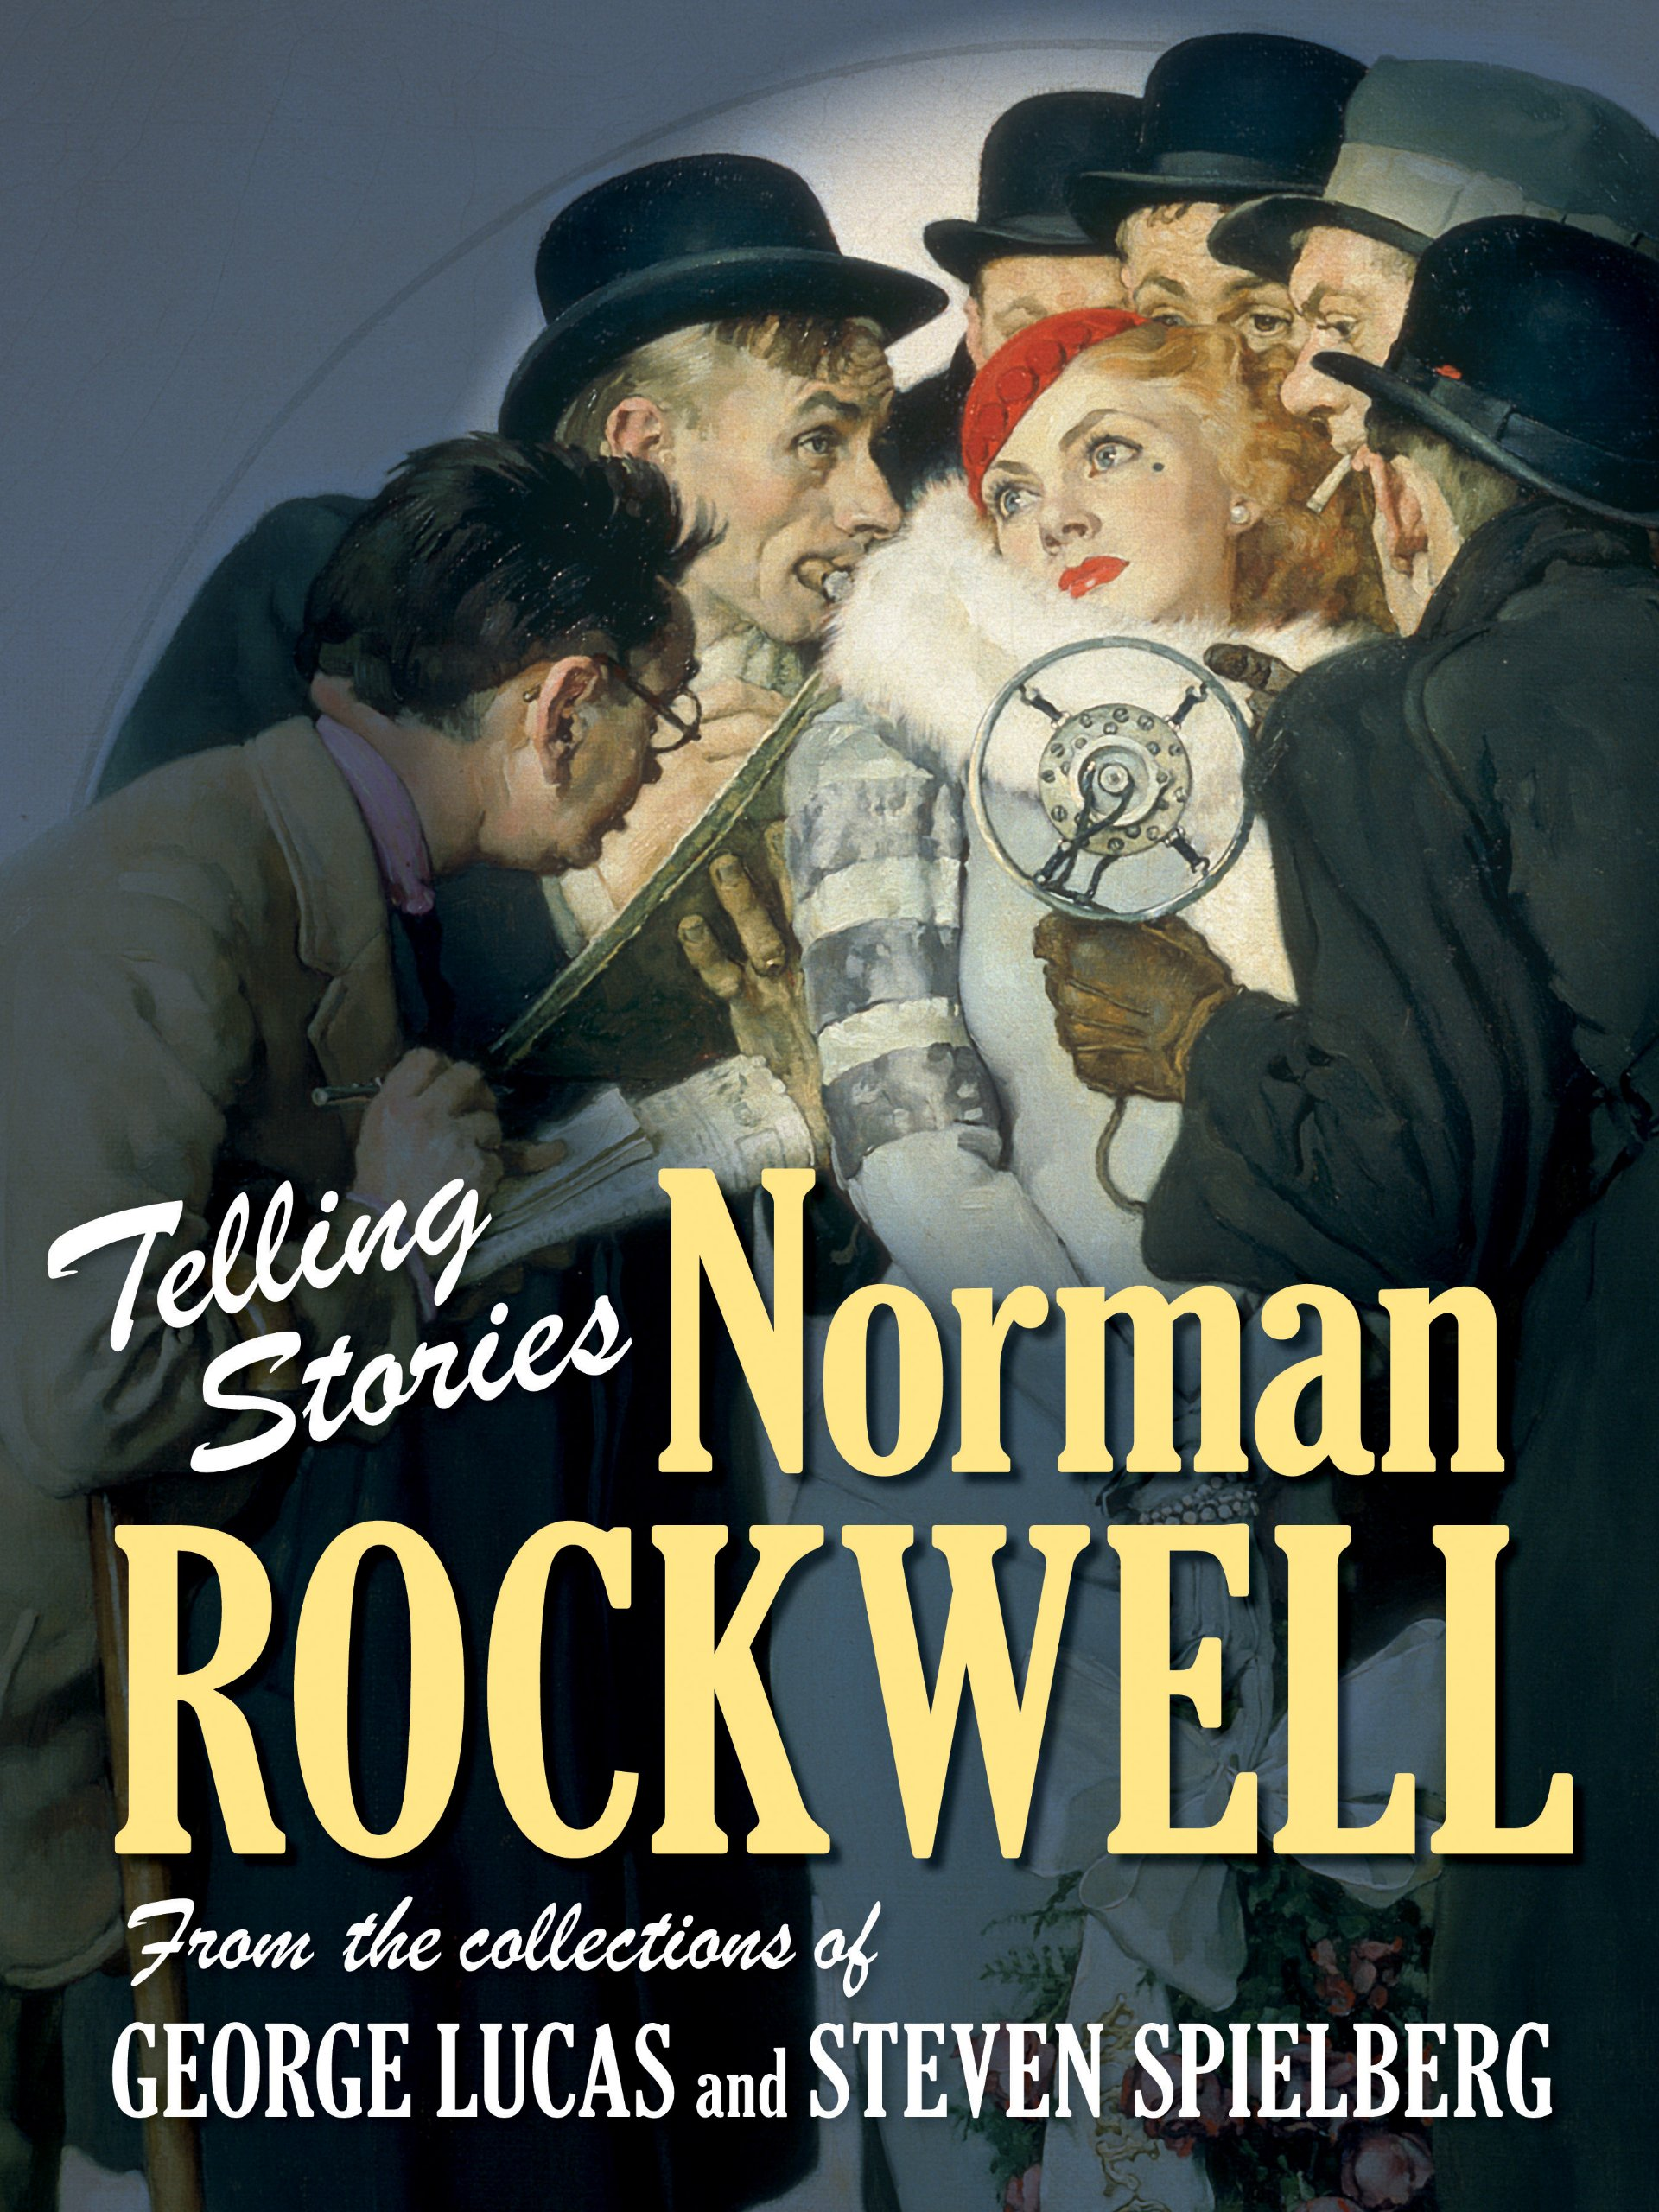 Telling Stories: Norman Rockwell from the Collections of George Lucas and Steven Spielberg PDF